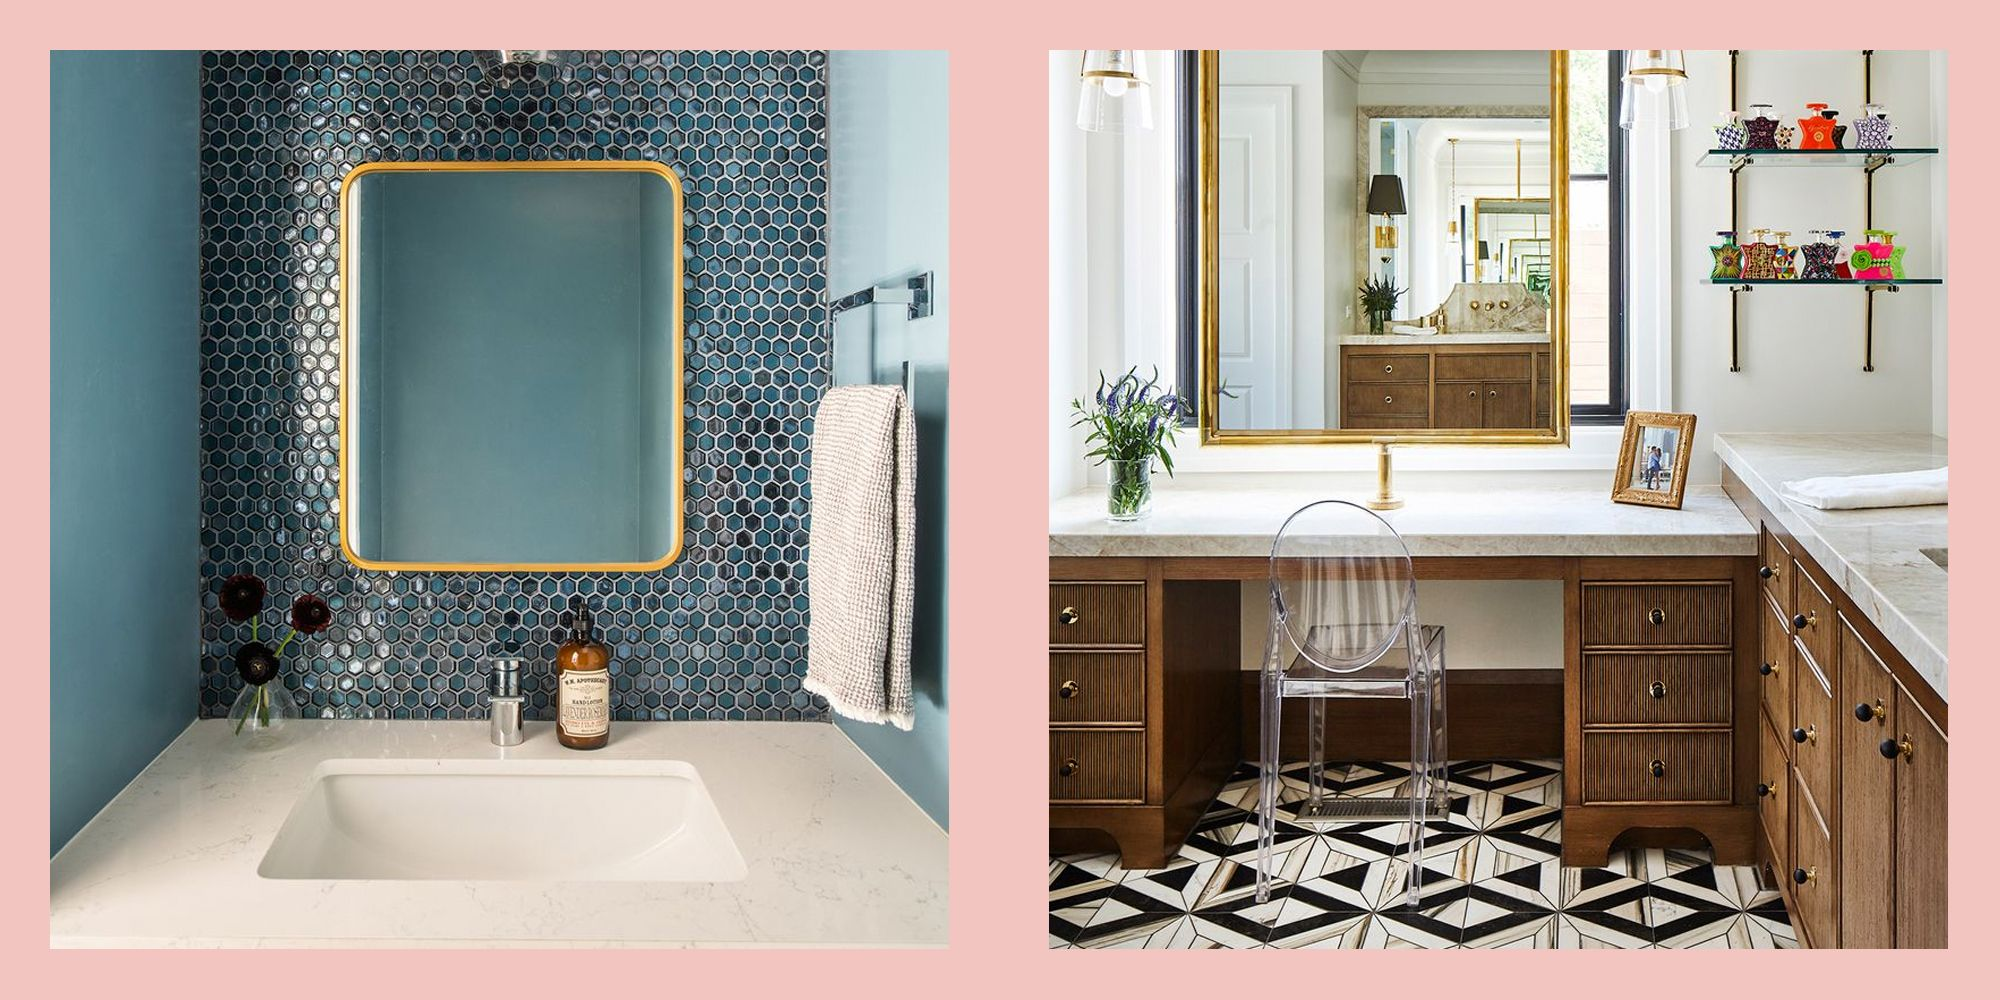 Top Bathroom Trends Of 2020 - What Bathroom Styles Are In